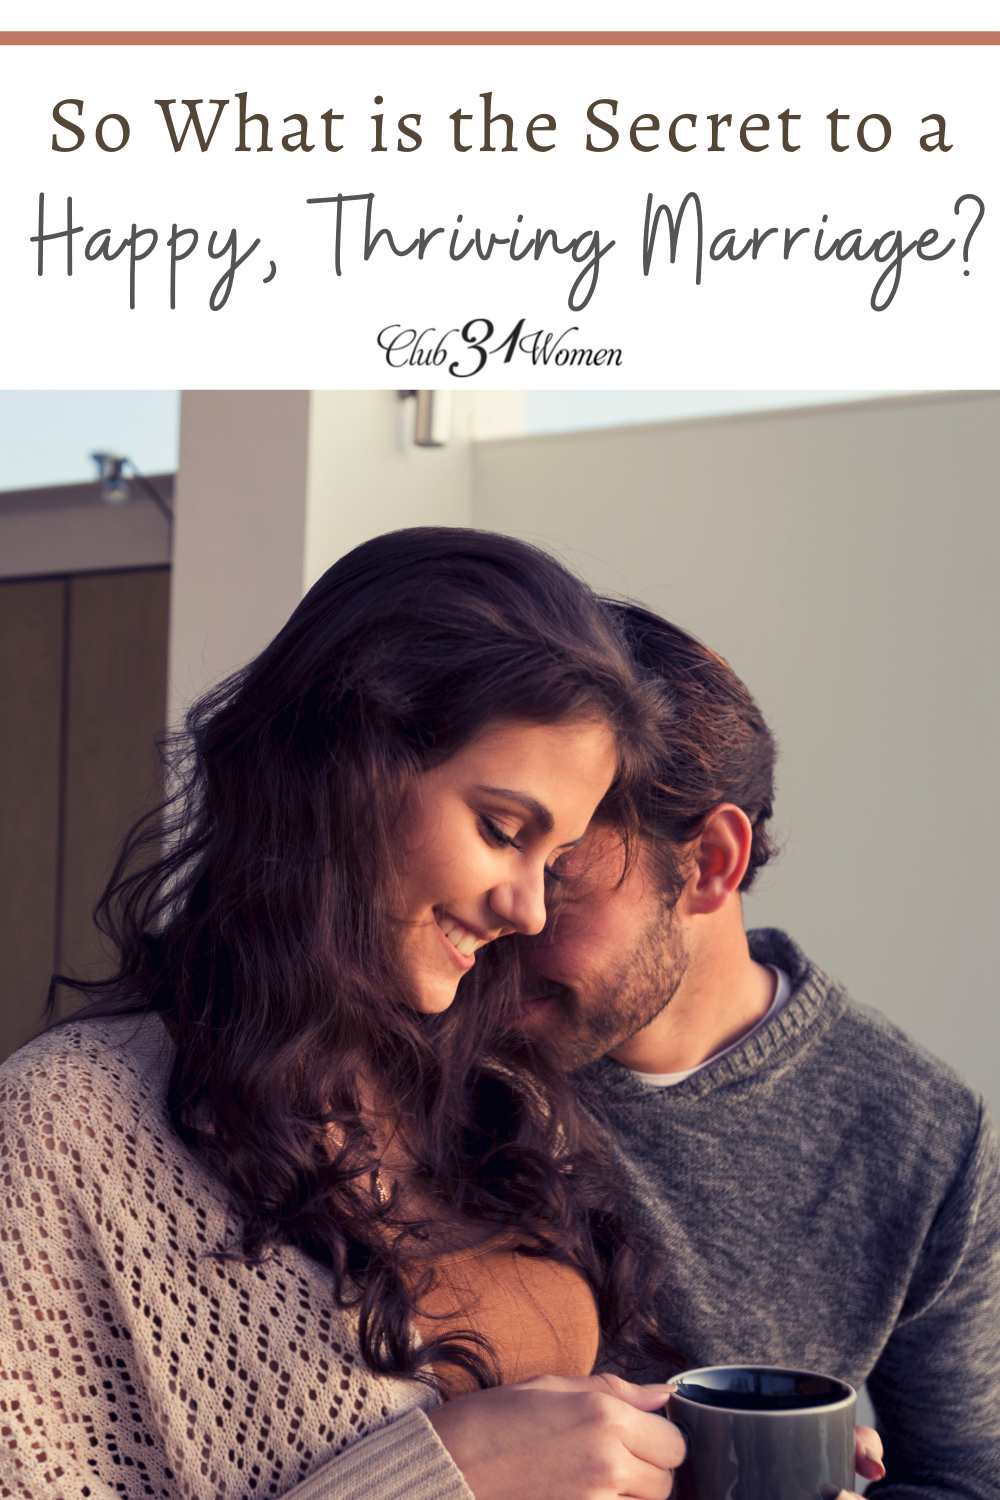 Having a thriving marriage doesn't need to be all about work. What if there was another secret to turning that spark to flame? via @Club31Women